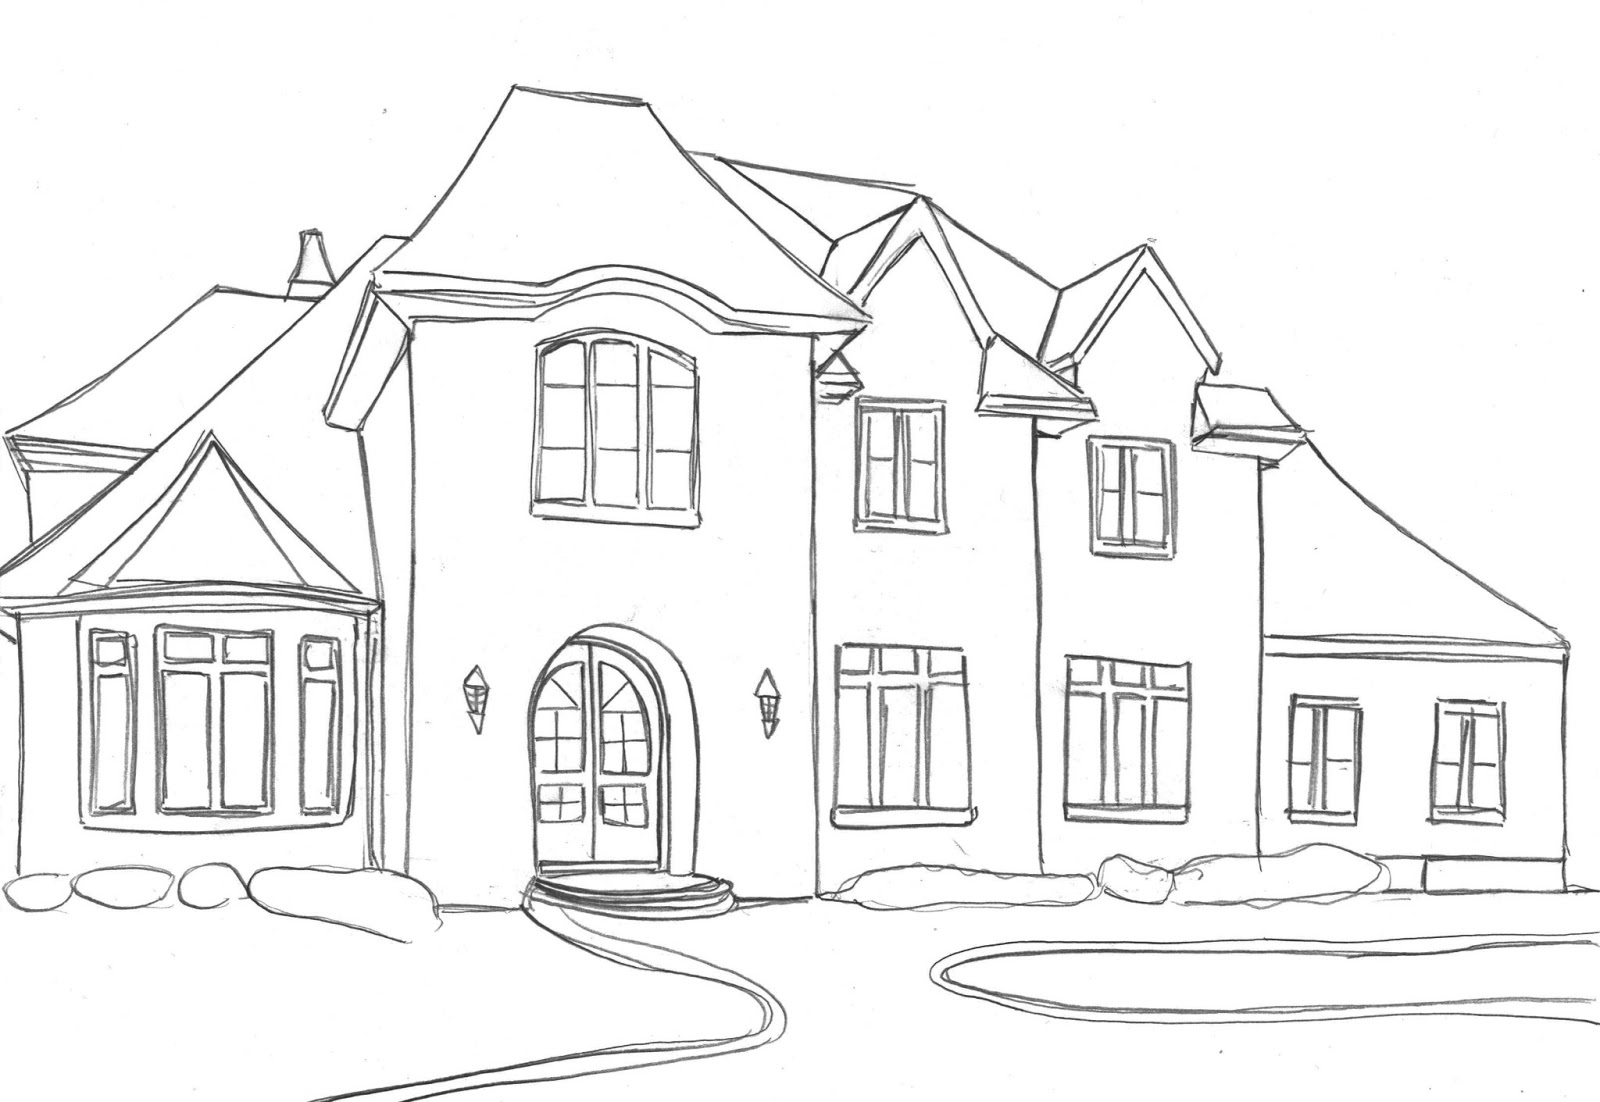 coloring outline of a house mobile home clip art outline best and house sketch house a coloring outline of